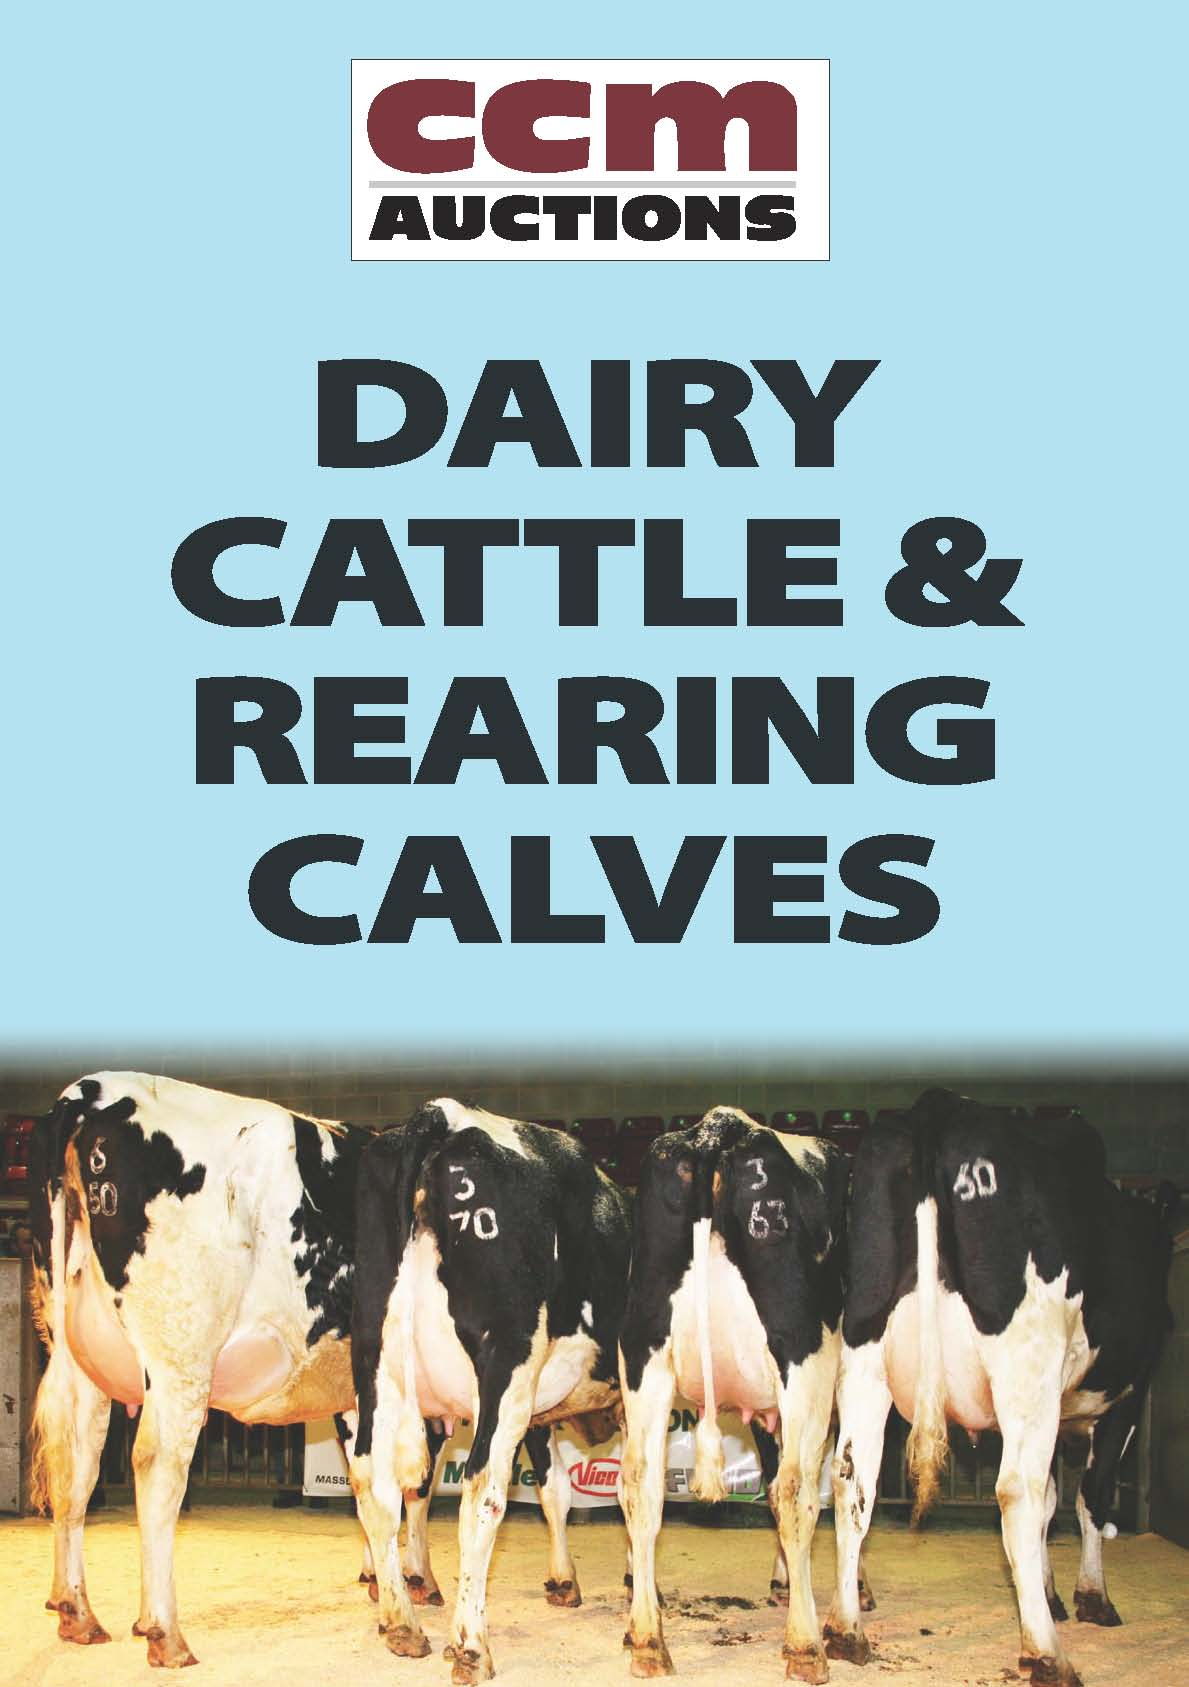 DAIRY & CALVES - MONDAY 10TH AUGUST 2015